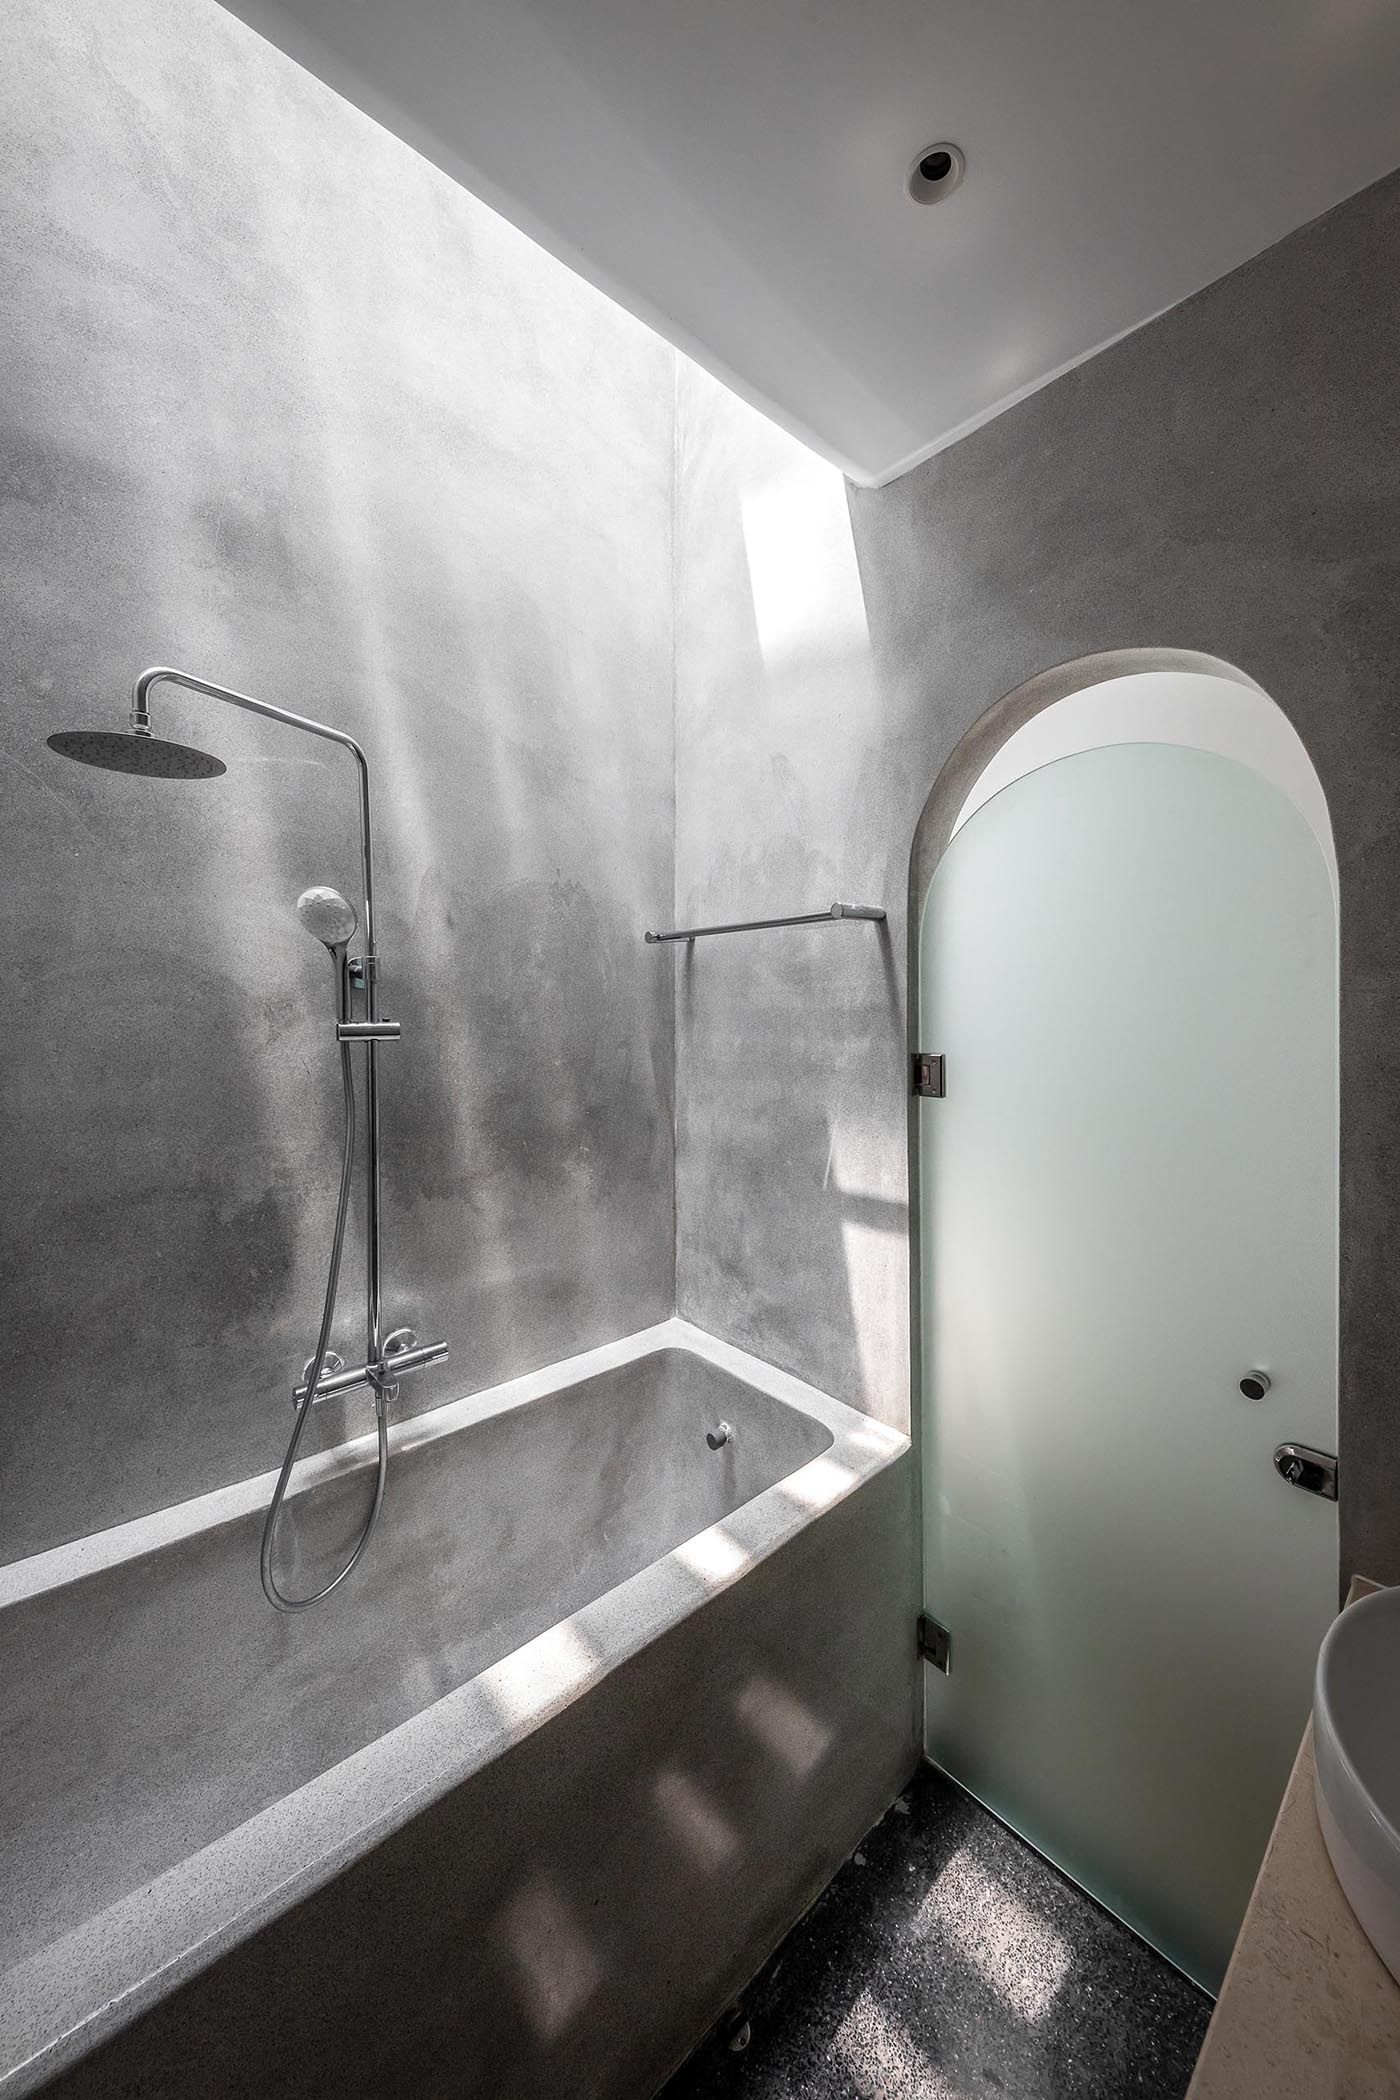 A modern grey bathroom with a frosted door, as well as a built-in bathtub.